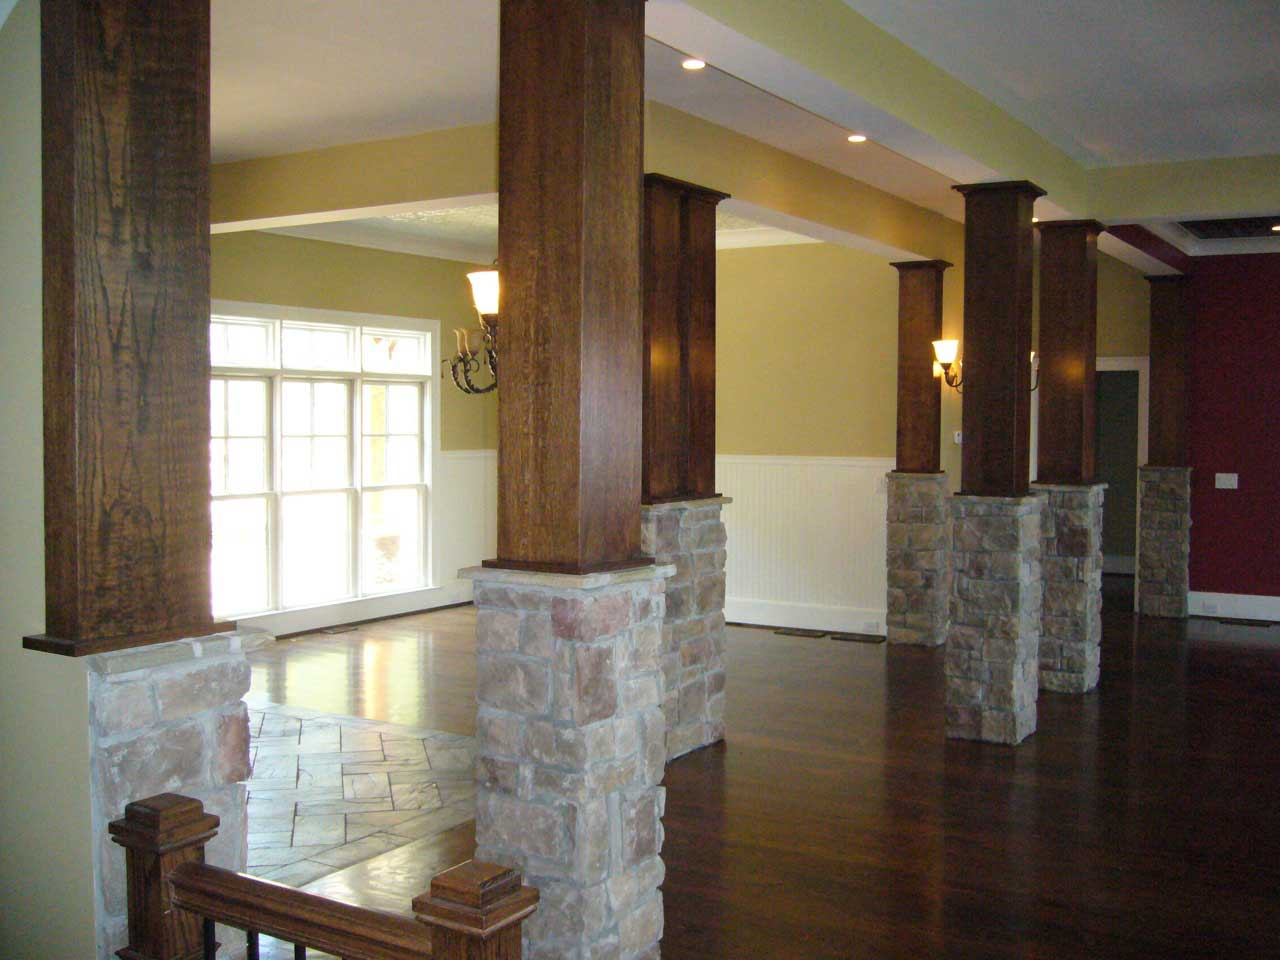 Example of pillars in this rustic Craftsman Plan #163-1027